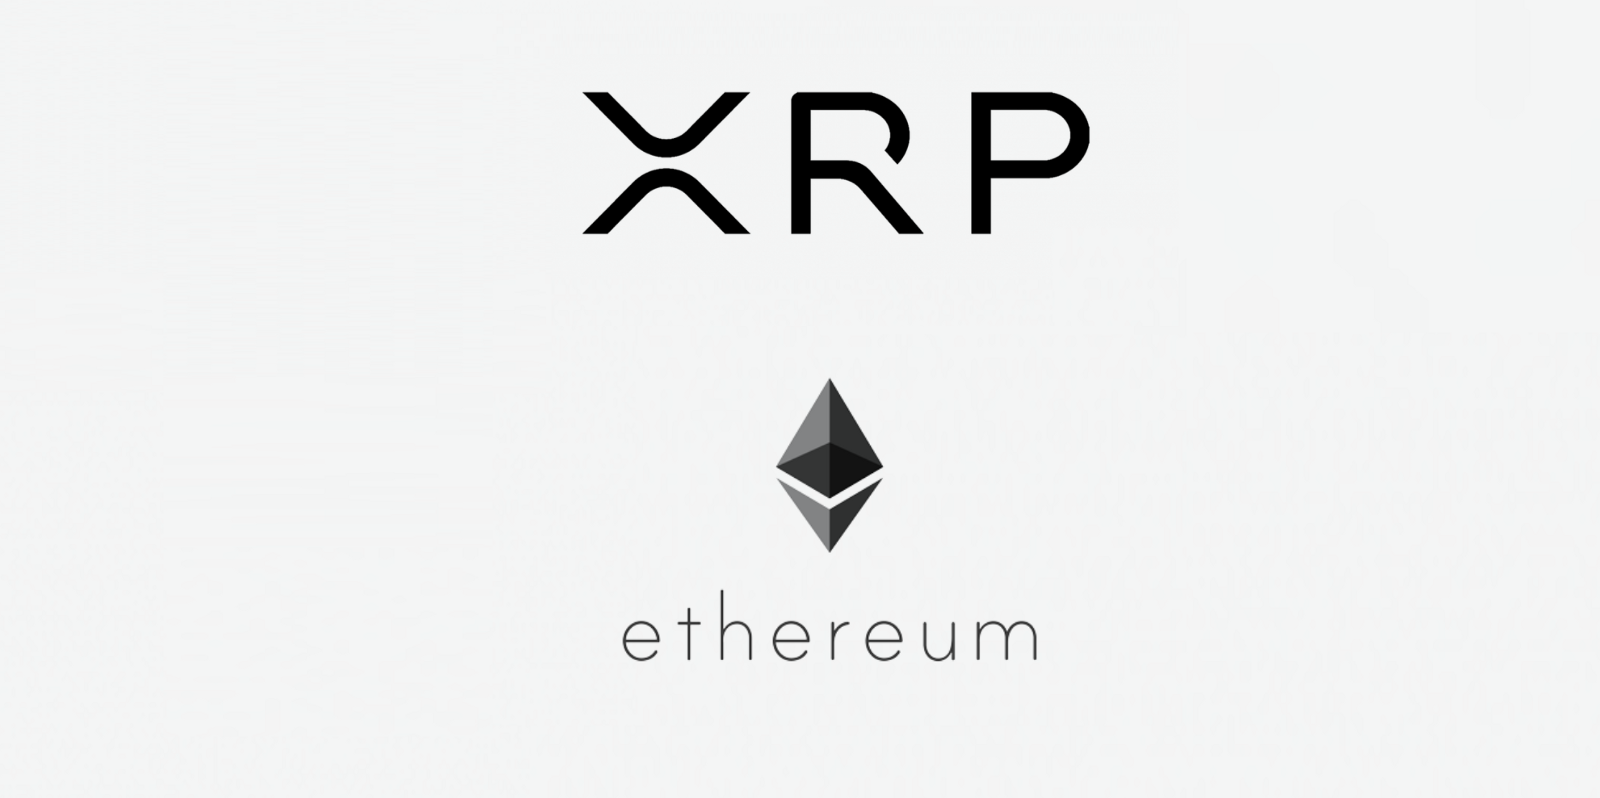 /ethereum-vs-ripple-xrp-which-one-is-a-better-investment-for-2019-7d02f03febd1 feature image